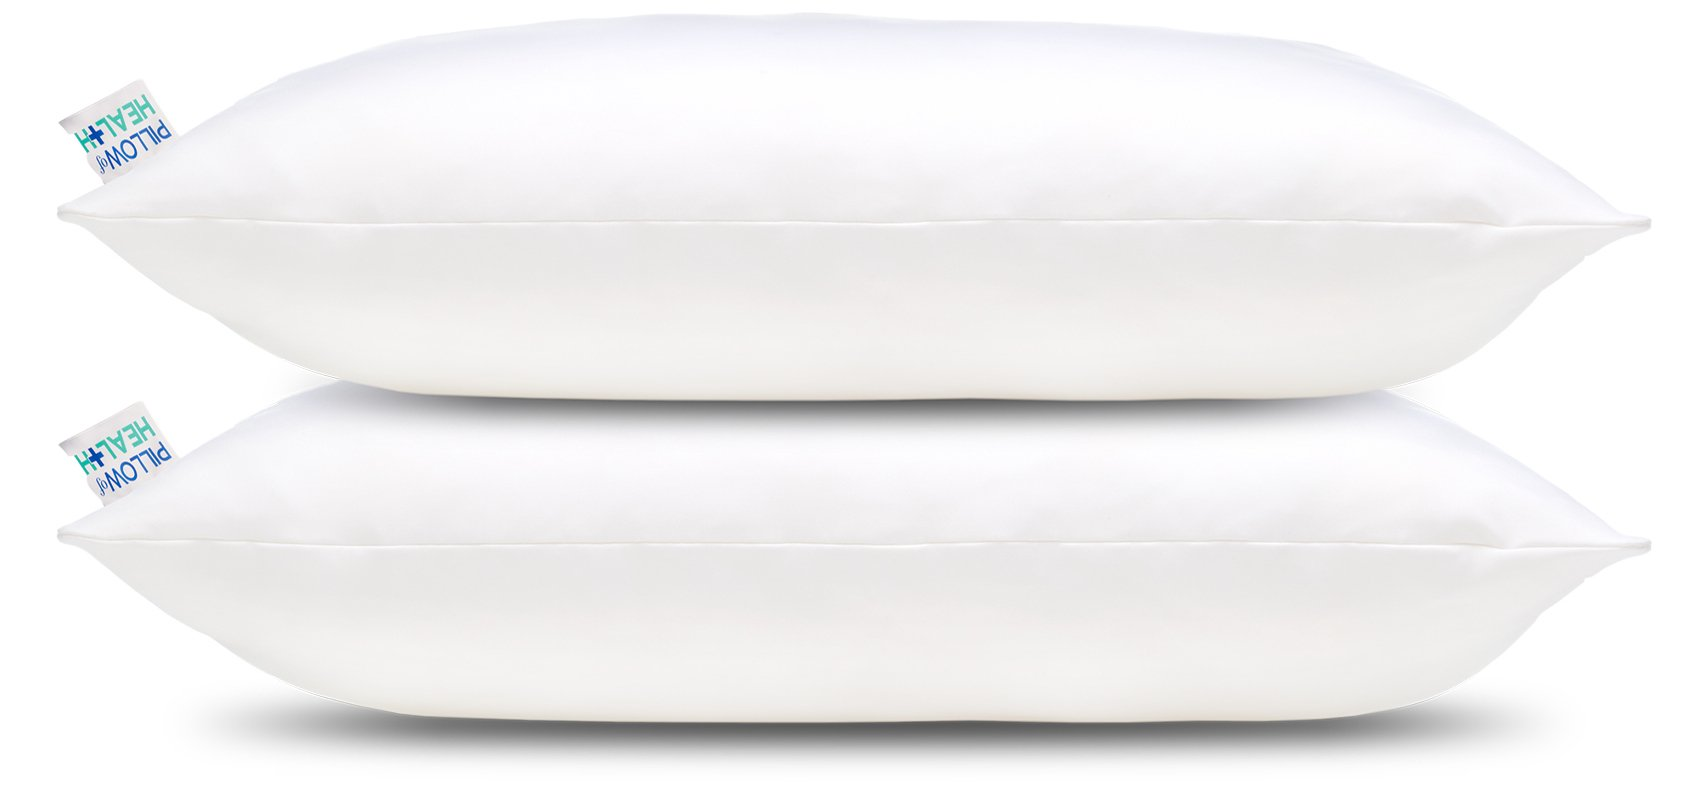 PILLOW of HEALTH - King 2 Pack | Luxury, Adjustable, Therapeutic Pillow For Better Sleep | Patented Design | Antimicrobial, Hypoallergenic, Dust Mite Resistant | Made in America